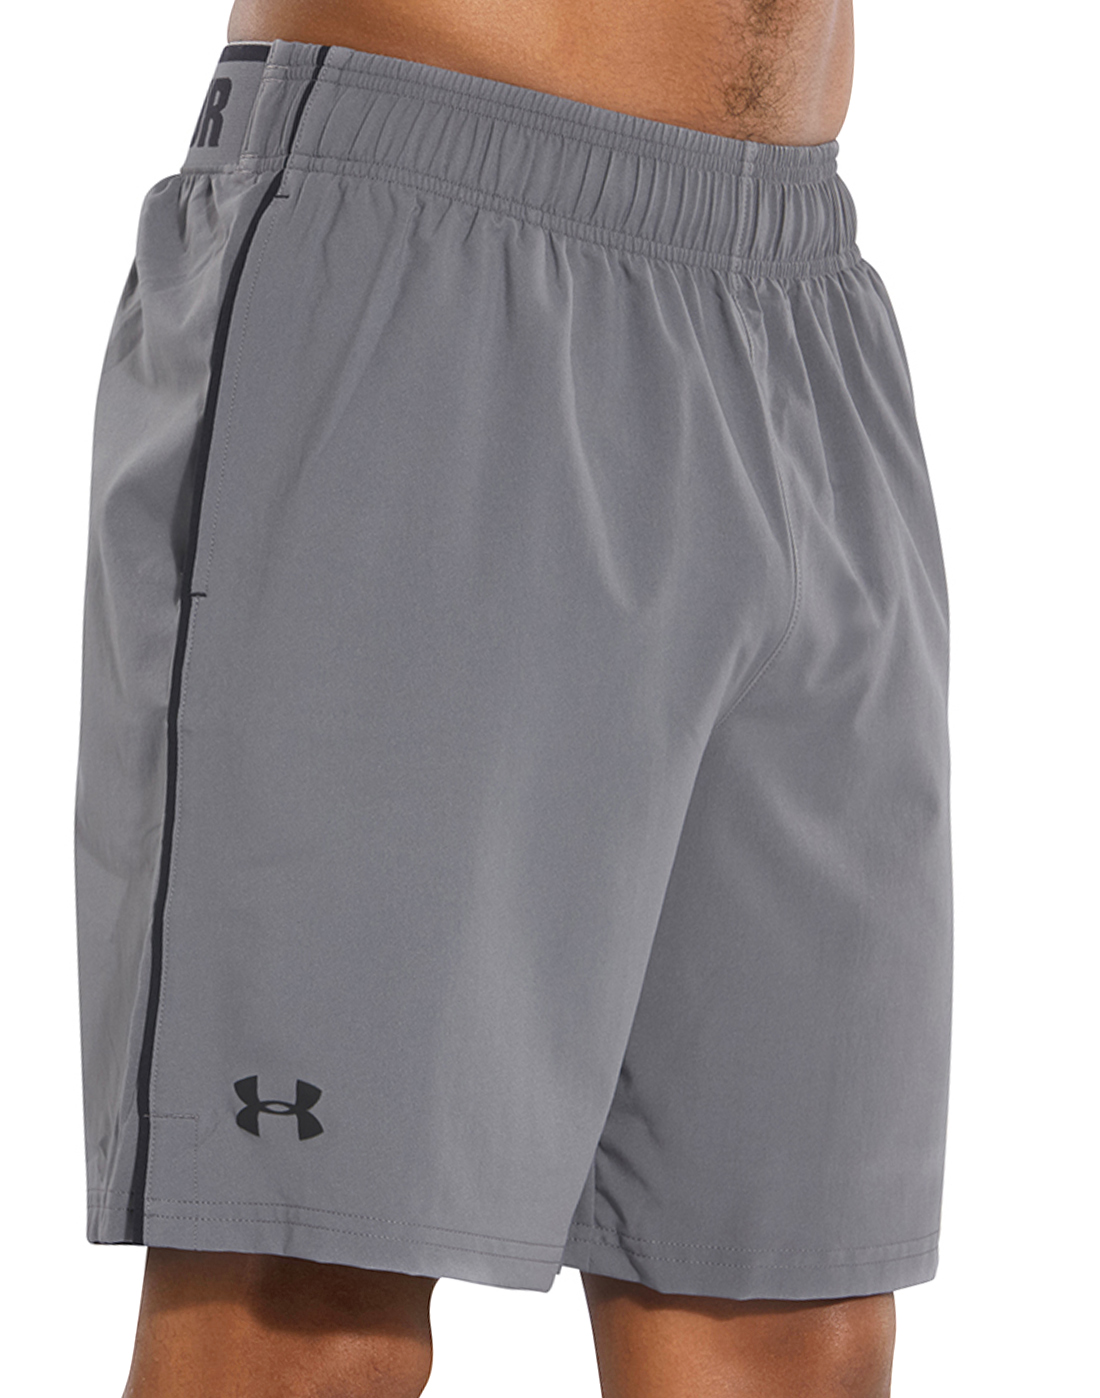 "c8853e500 Men's Under Armour Mirage 8"" Shorts 